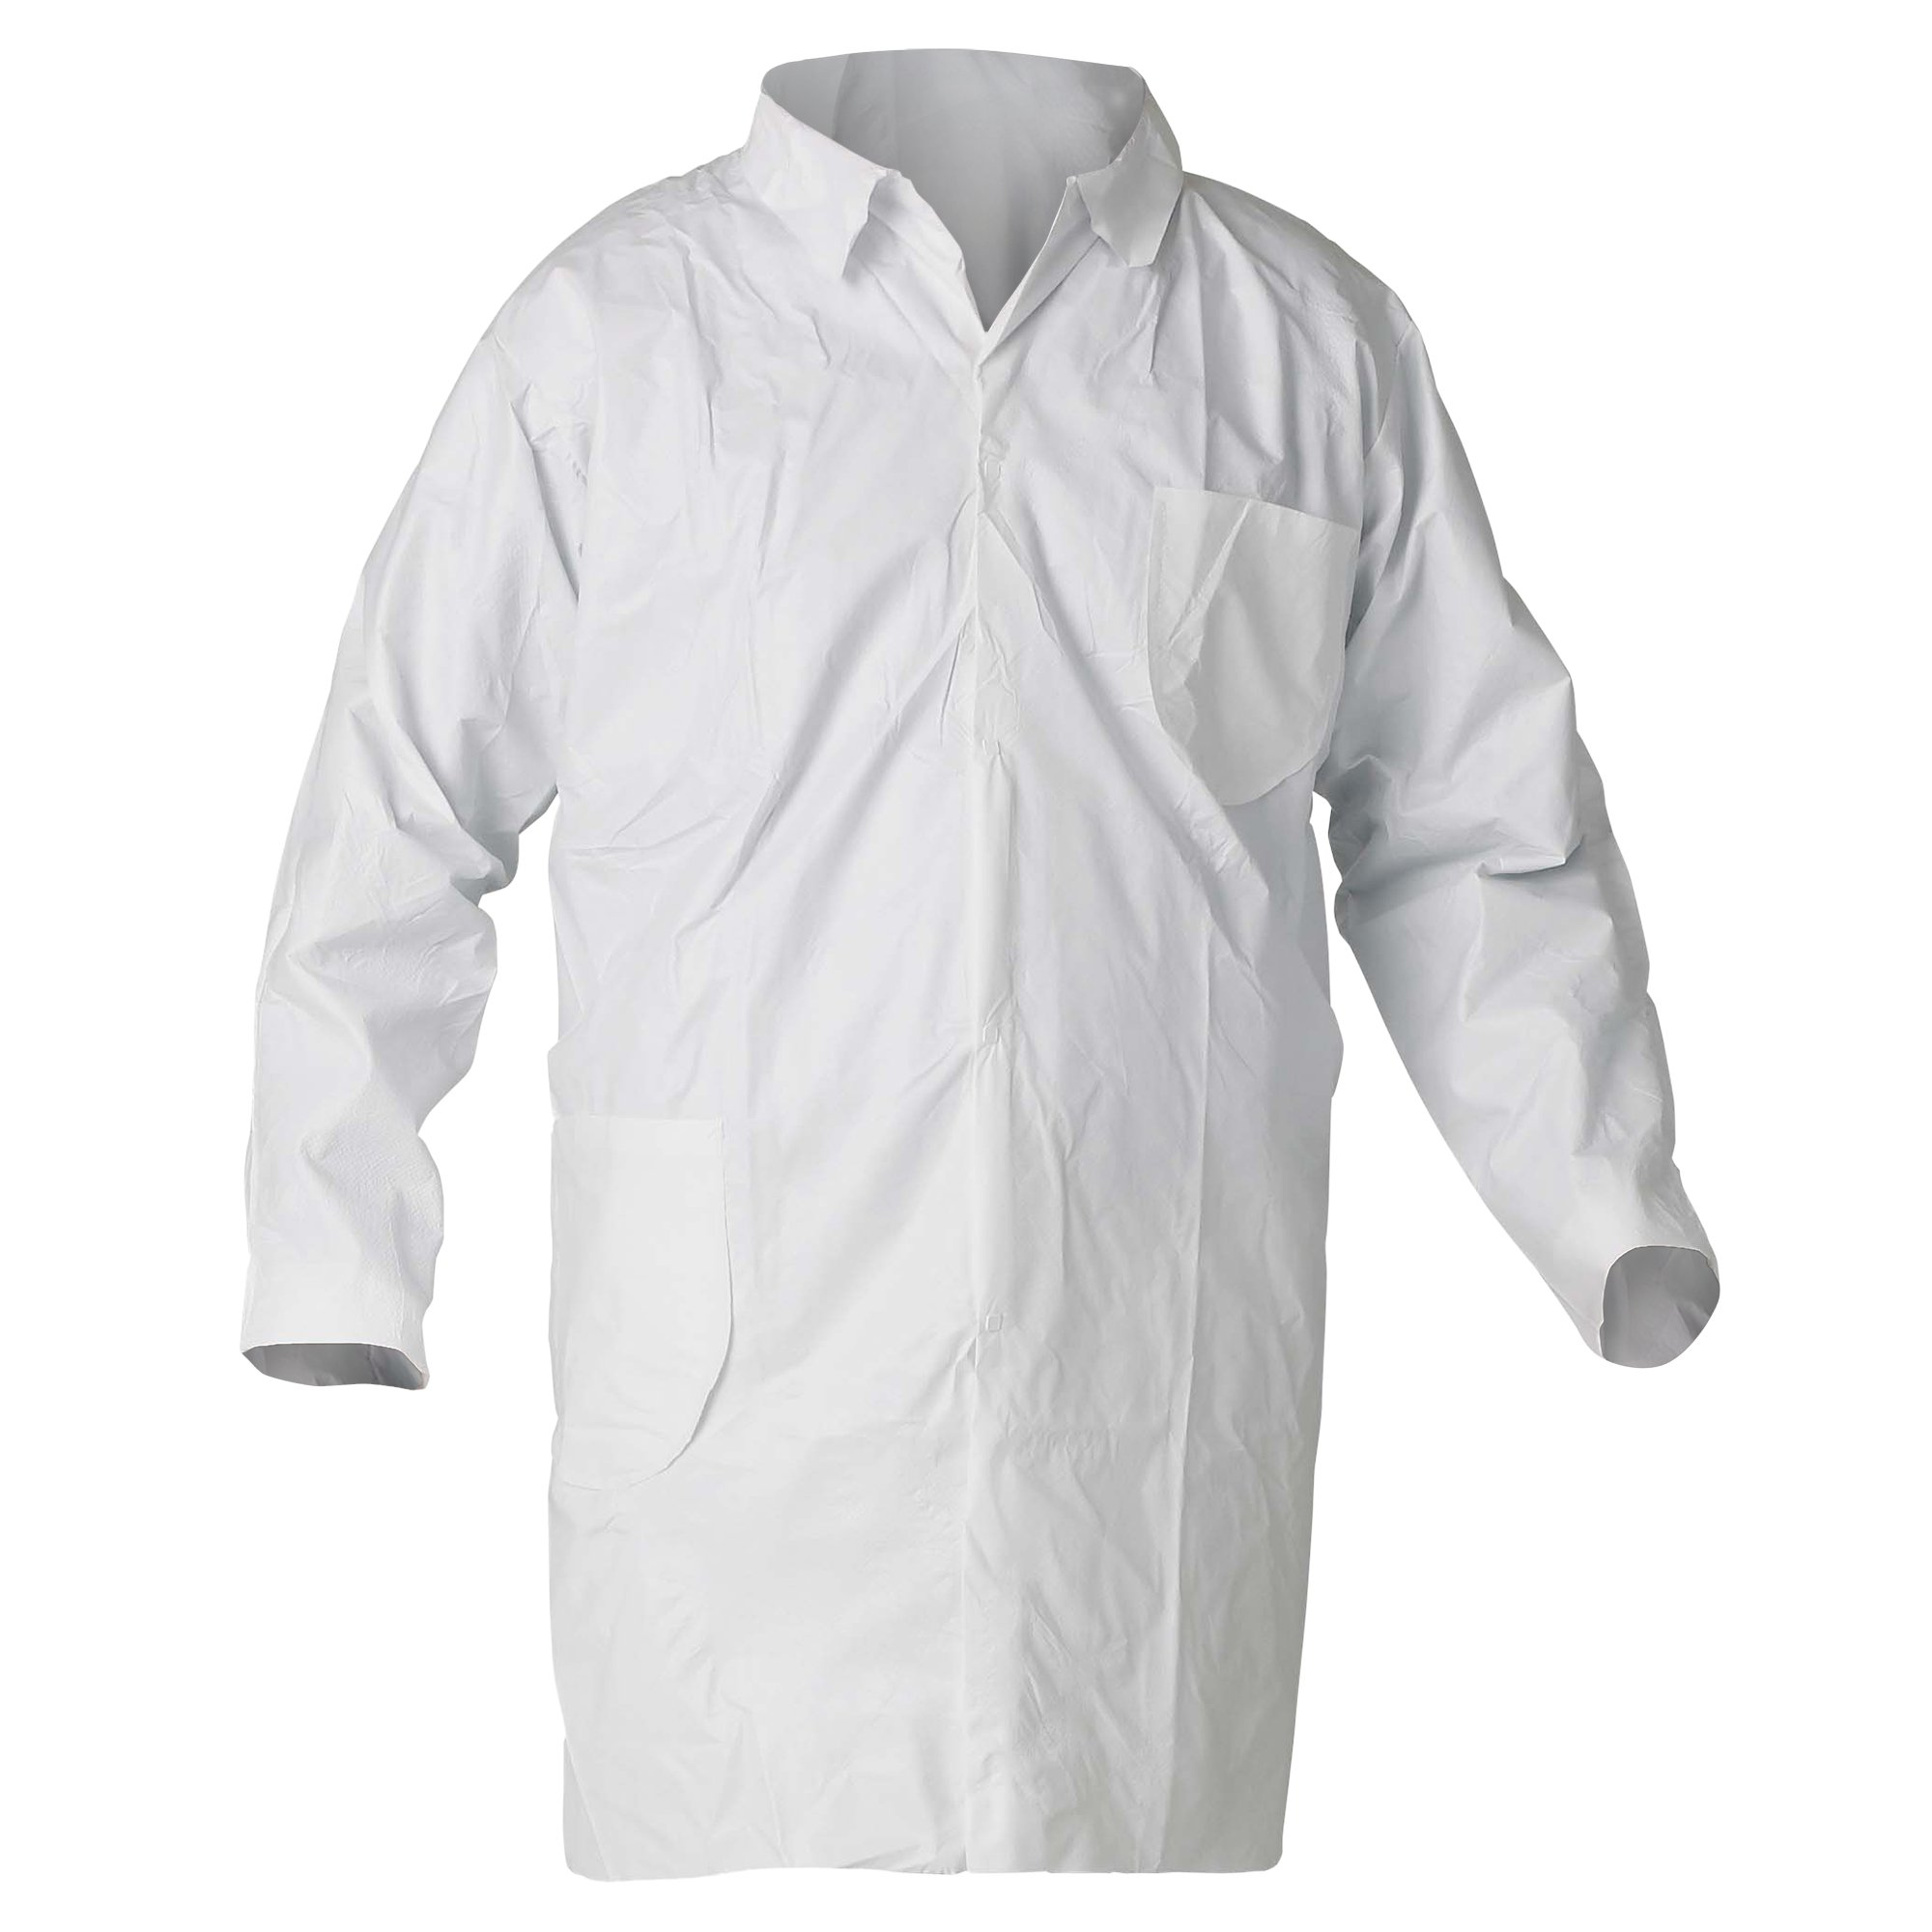 Kleenguard A40 Liquid & Particle Protection Lab Coats (44453), 4-Snap Closure, Knee Length, Open Wrists, White, Large, 30 / Case